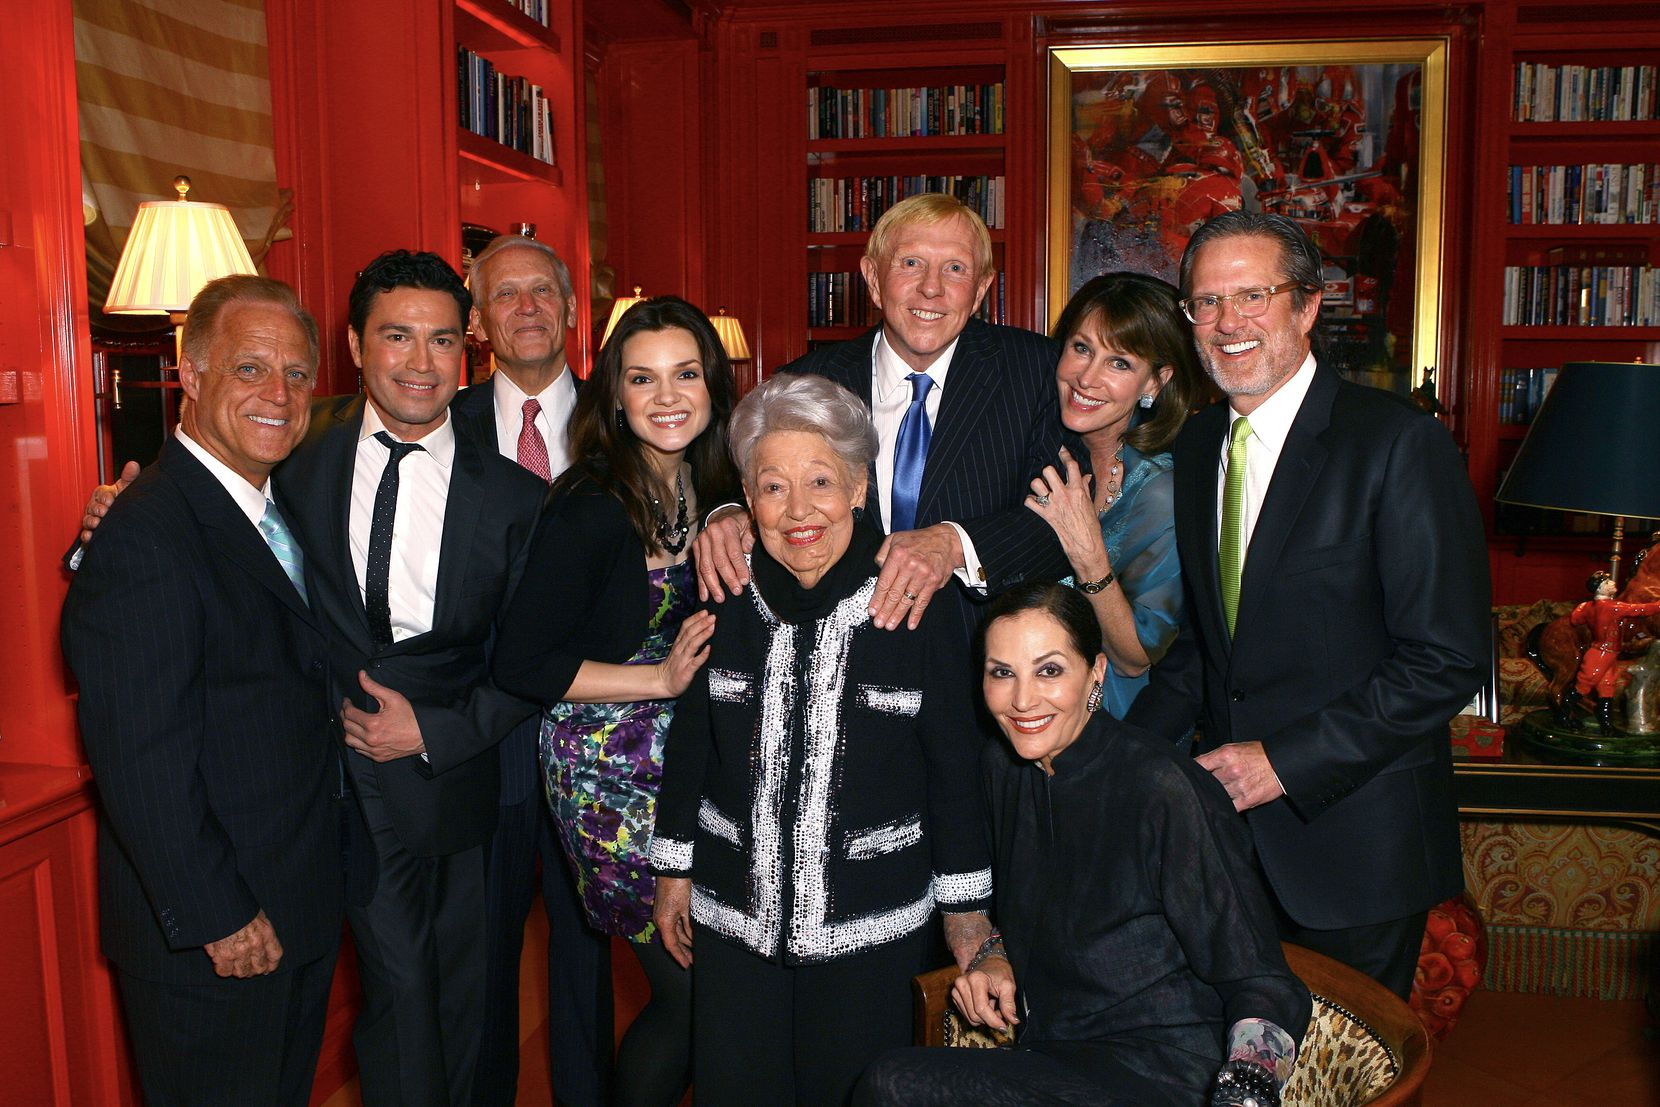 The Horatio Alger Association of Distinguished Americans celebrated Ebby Halliday's 100th birthday at the home of Jan Miller and Jeff Rich in March 2011. From left: Terry Giroux, executive director of Horatio Alger; vocalist Mario Frangoulis; retired banker Jody Grant; soprano Andriana Chuchman; Ebby Halliday; Steve and Barbara Durham; and Jeff Rich. Jan Miller is at lower right.